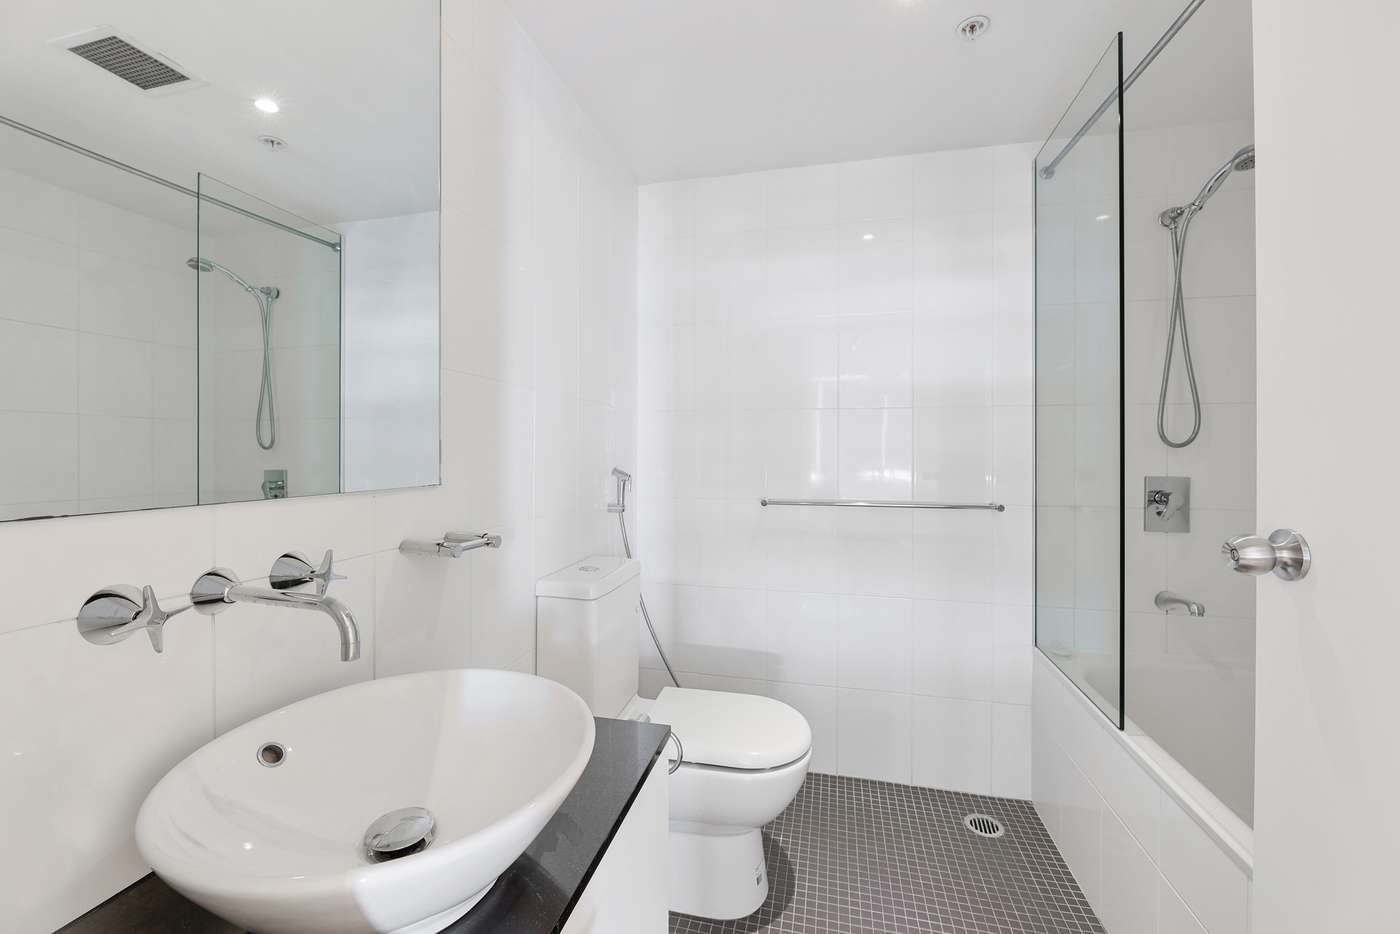 Sixth view of Homely apartment listing, 2201/355 Kent Street, Sydney NSW 2000